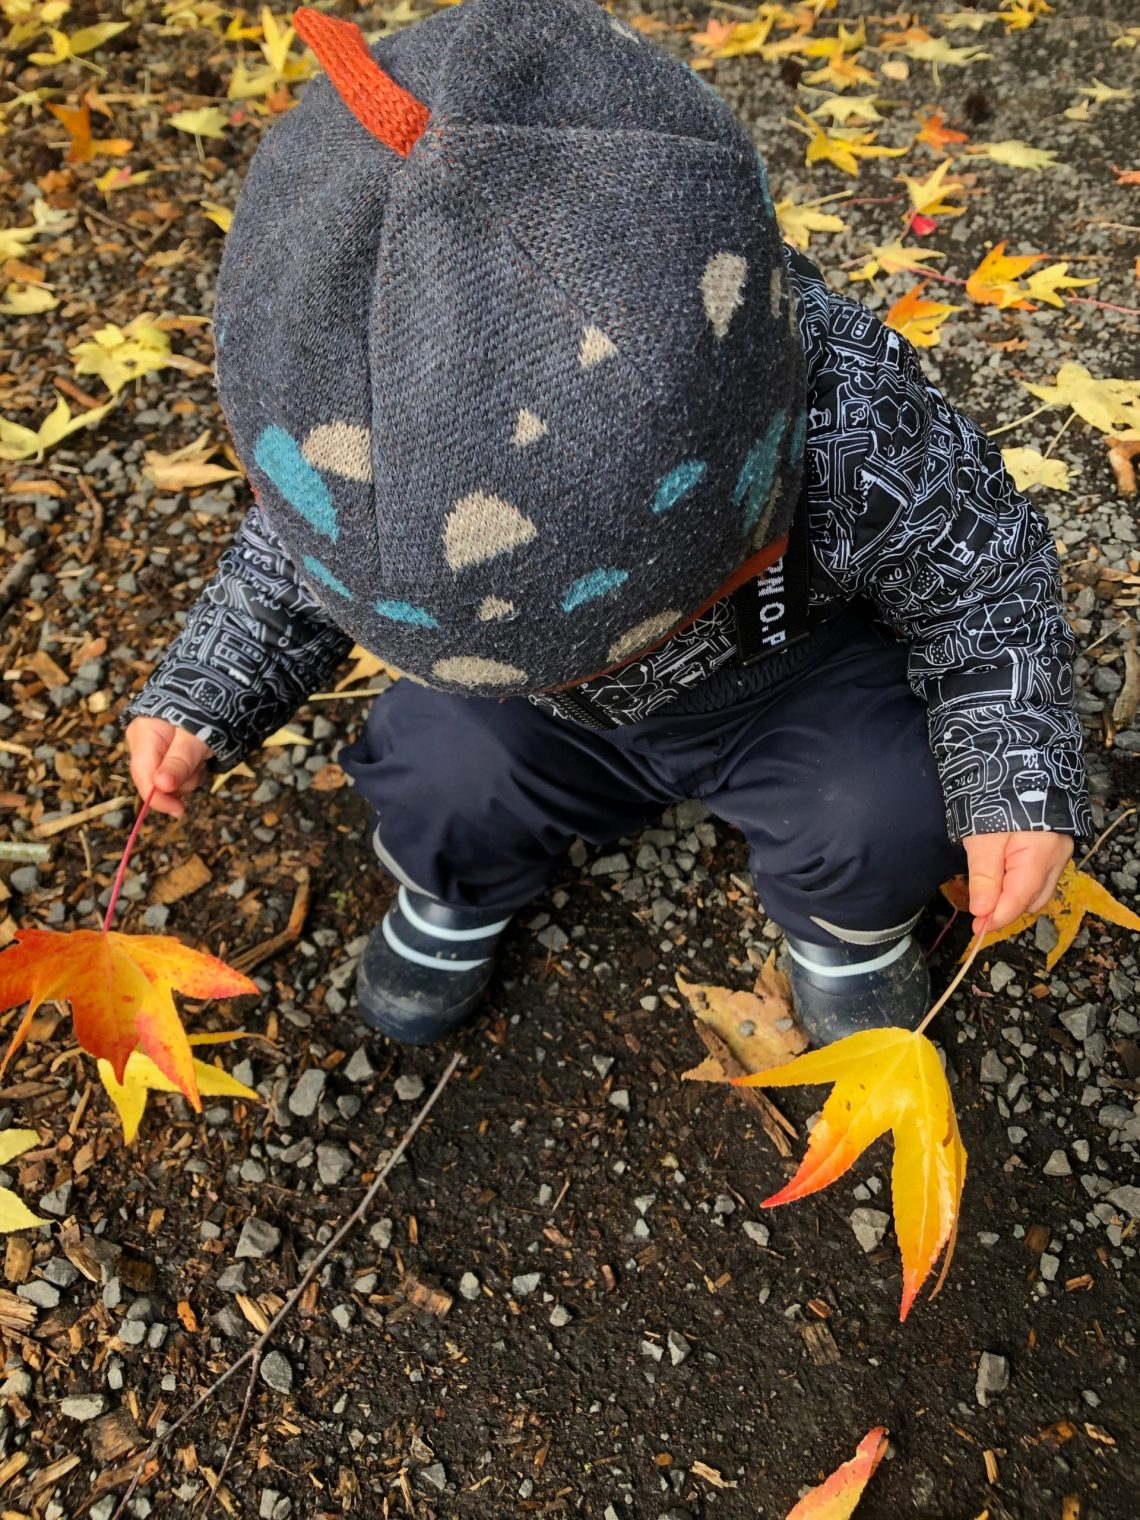 Toddler playing in colorful fall leaves